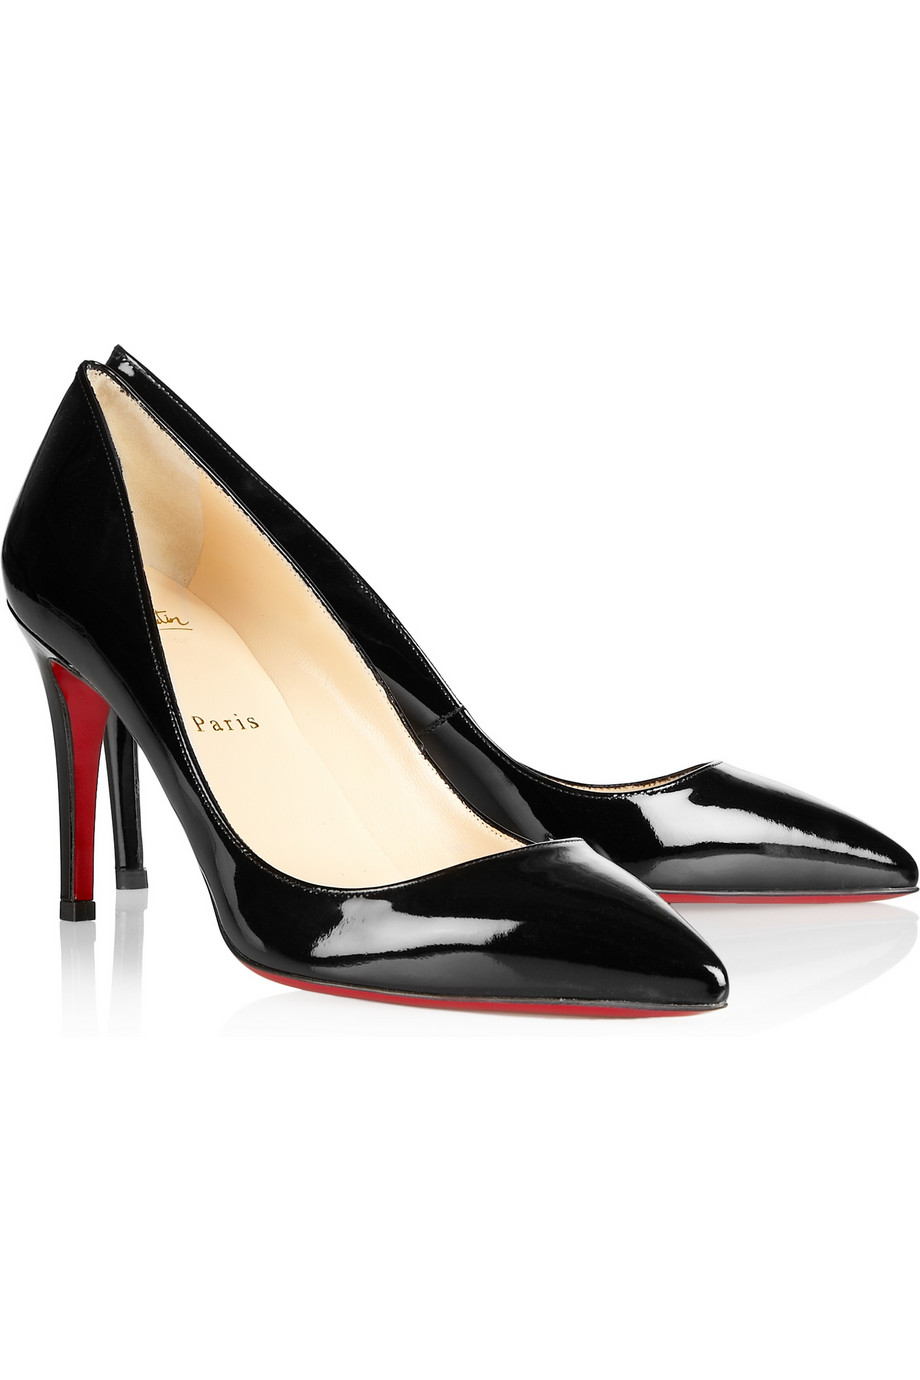 christian louboutin pigalle 100 black patent leather